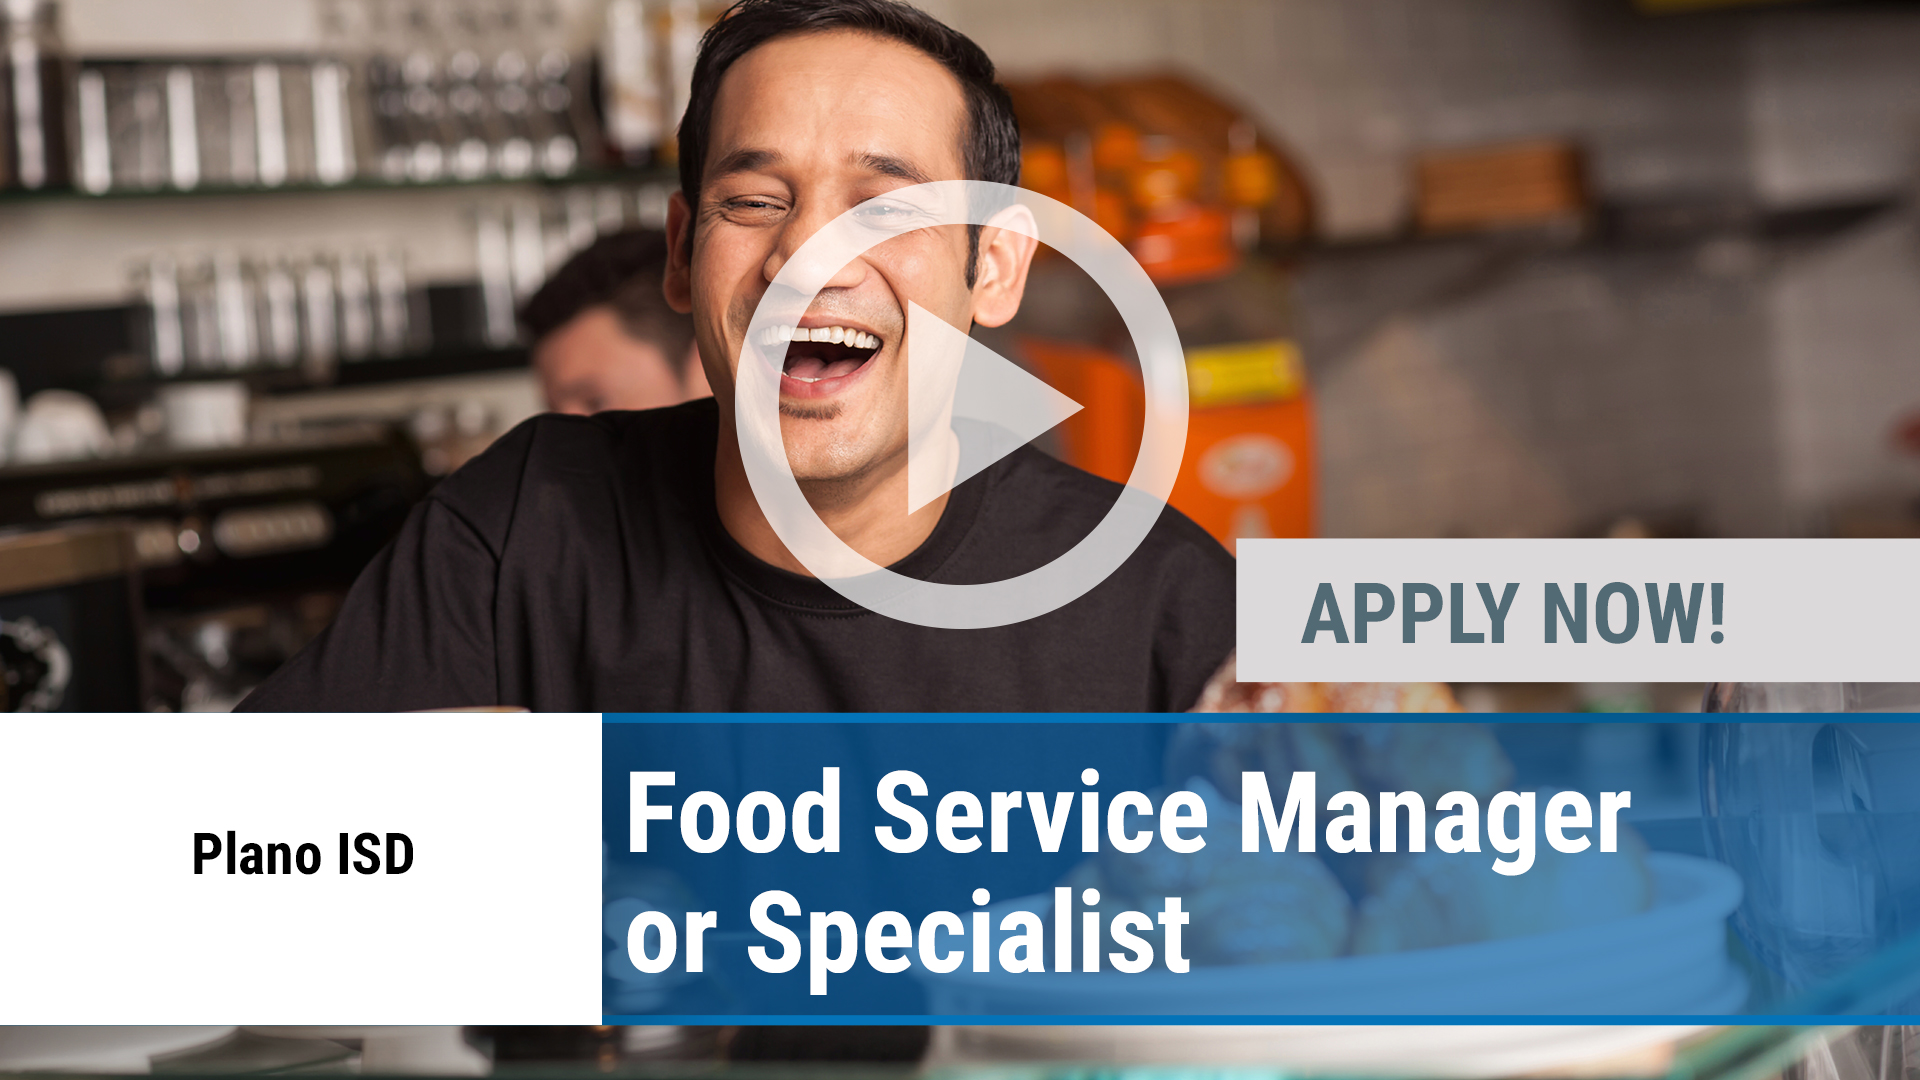 Watch our careers video for available job opening Food Service Manager or Specialist in Plano, TX